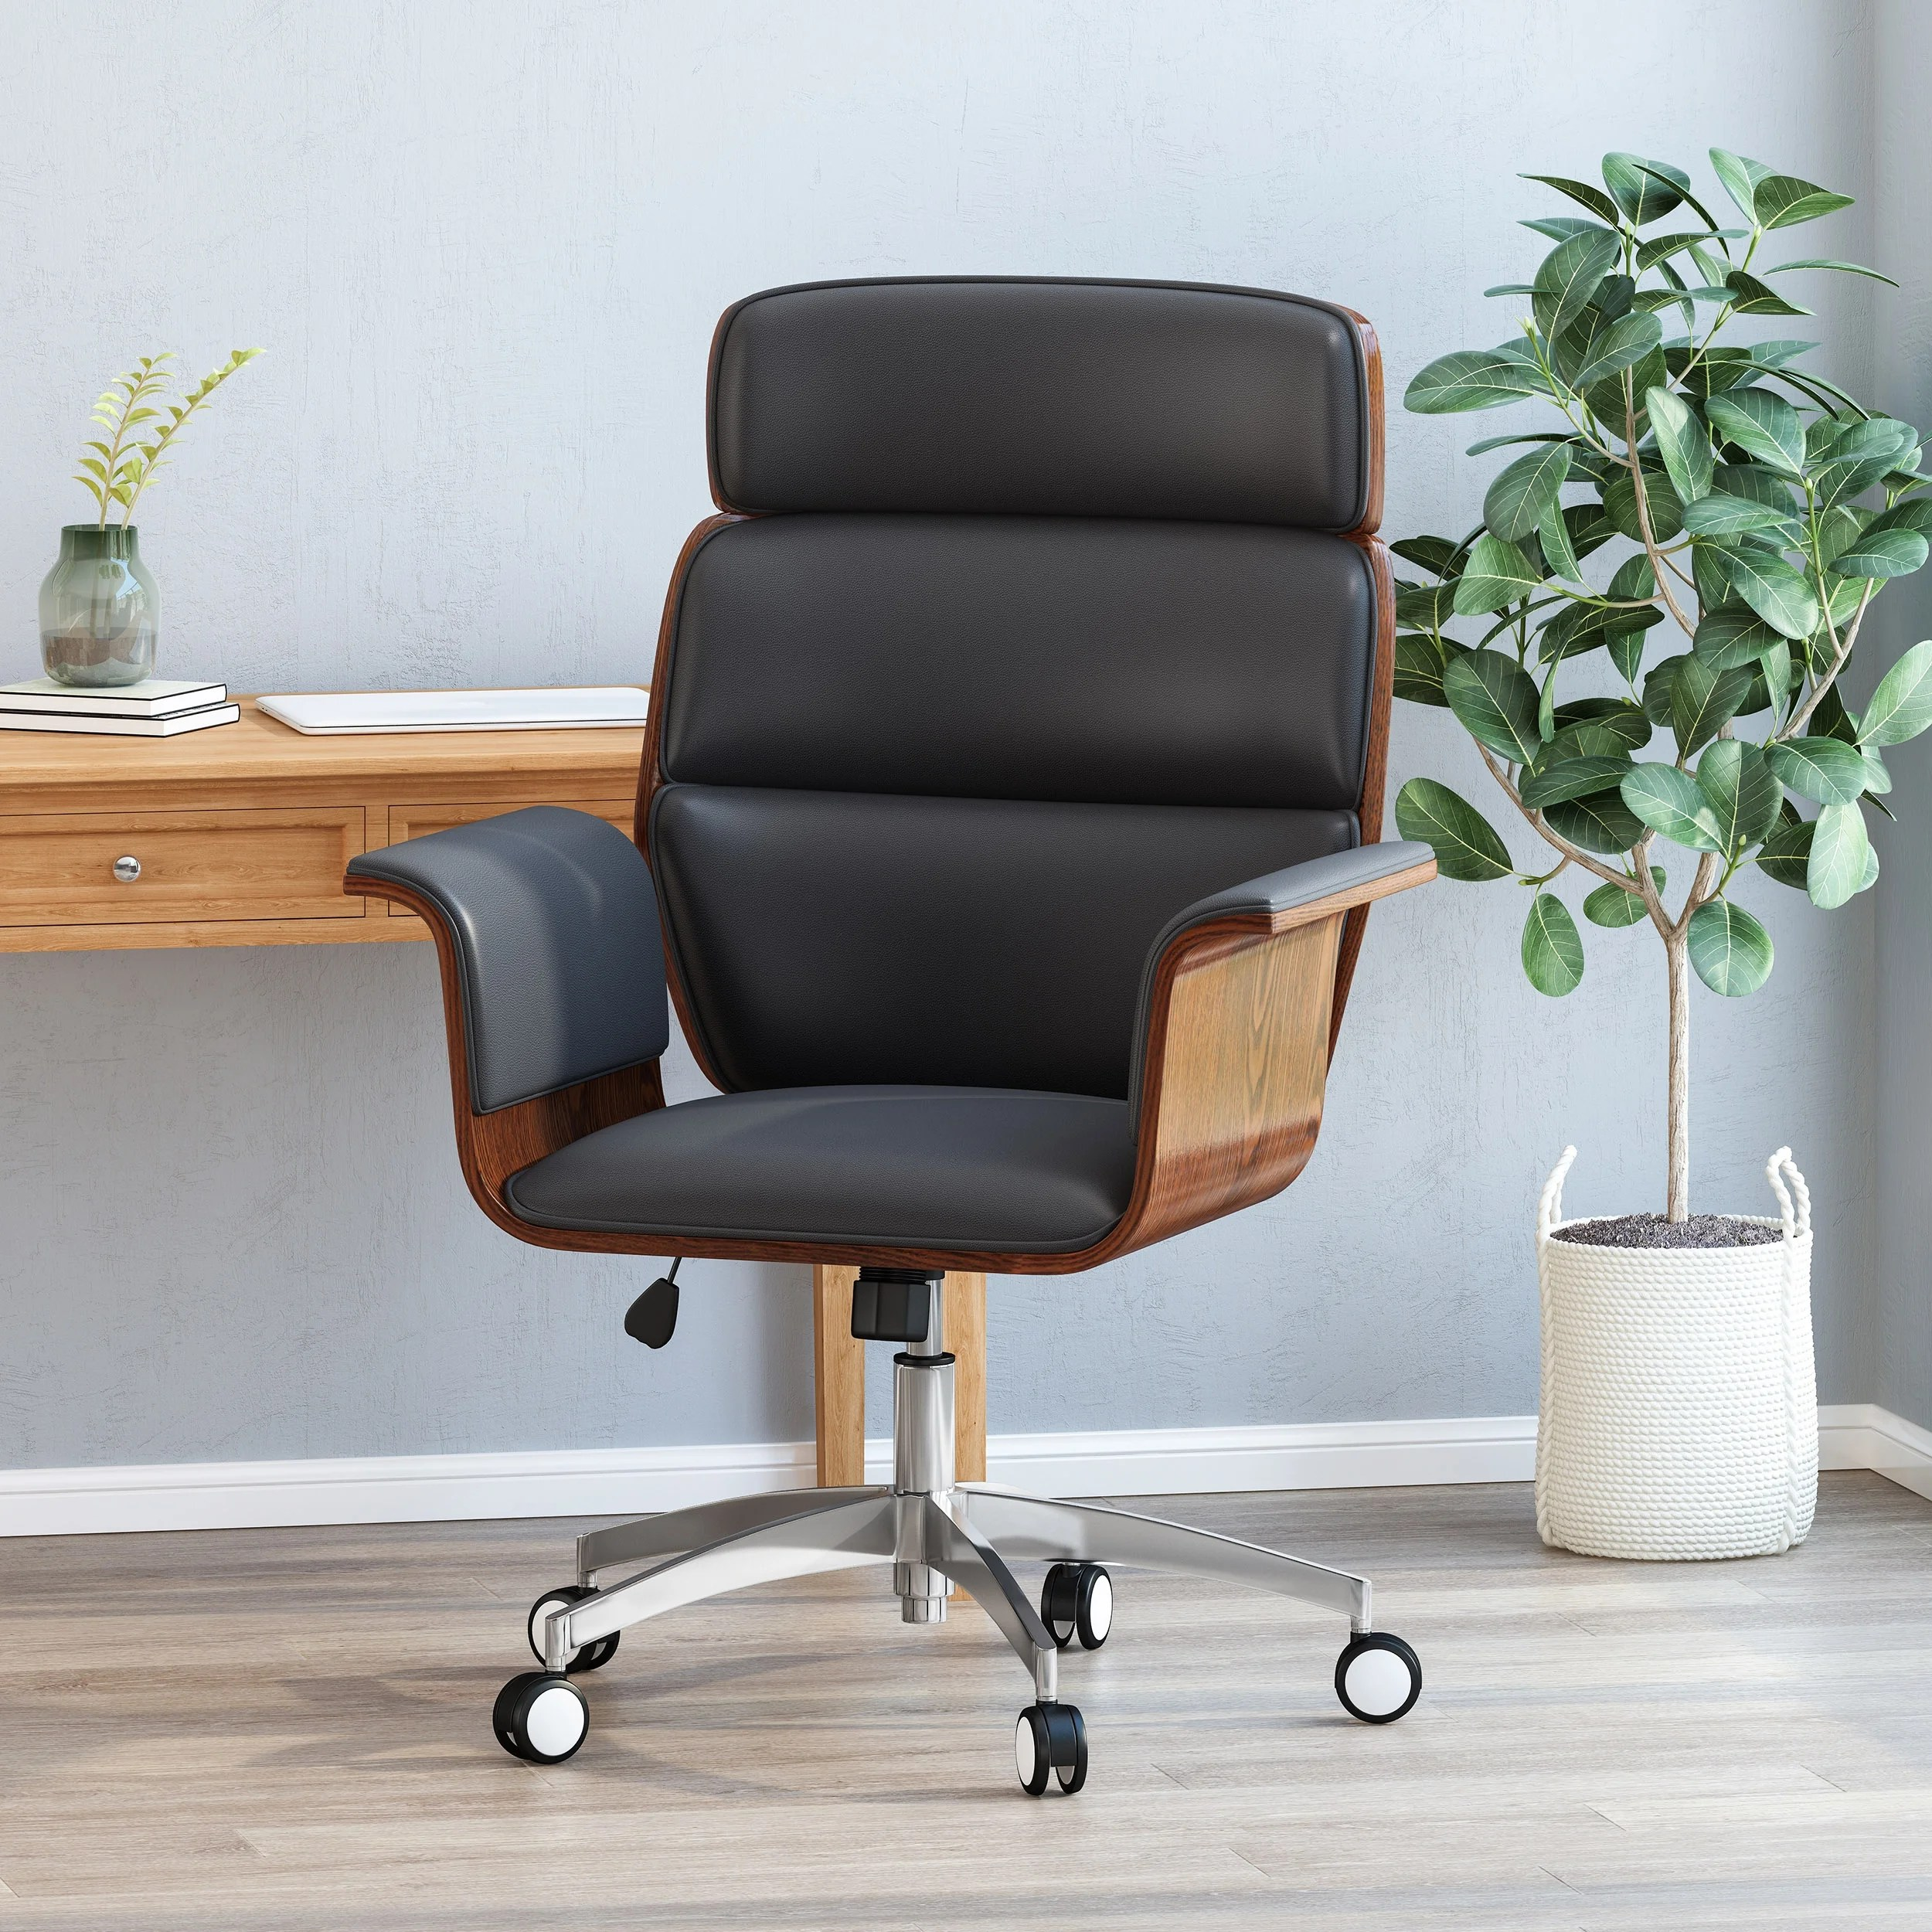 Cannonade Mid Century Swivel Office Chair By Christopher Knight Home Overstock 31914200 Black Gray Silver